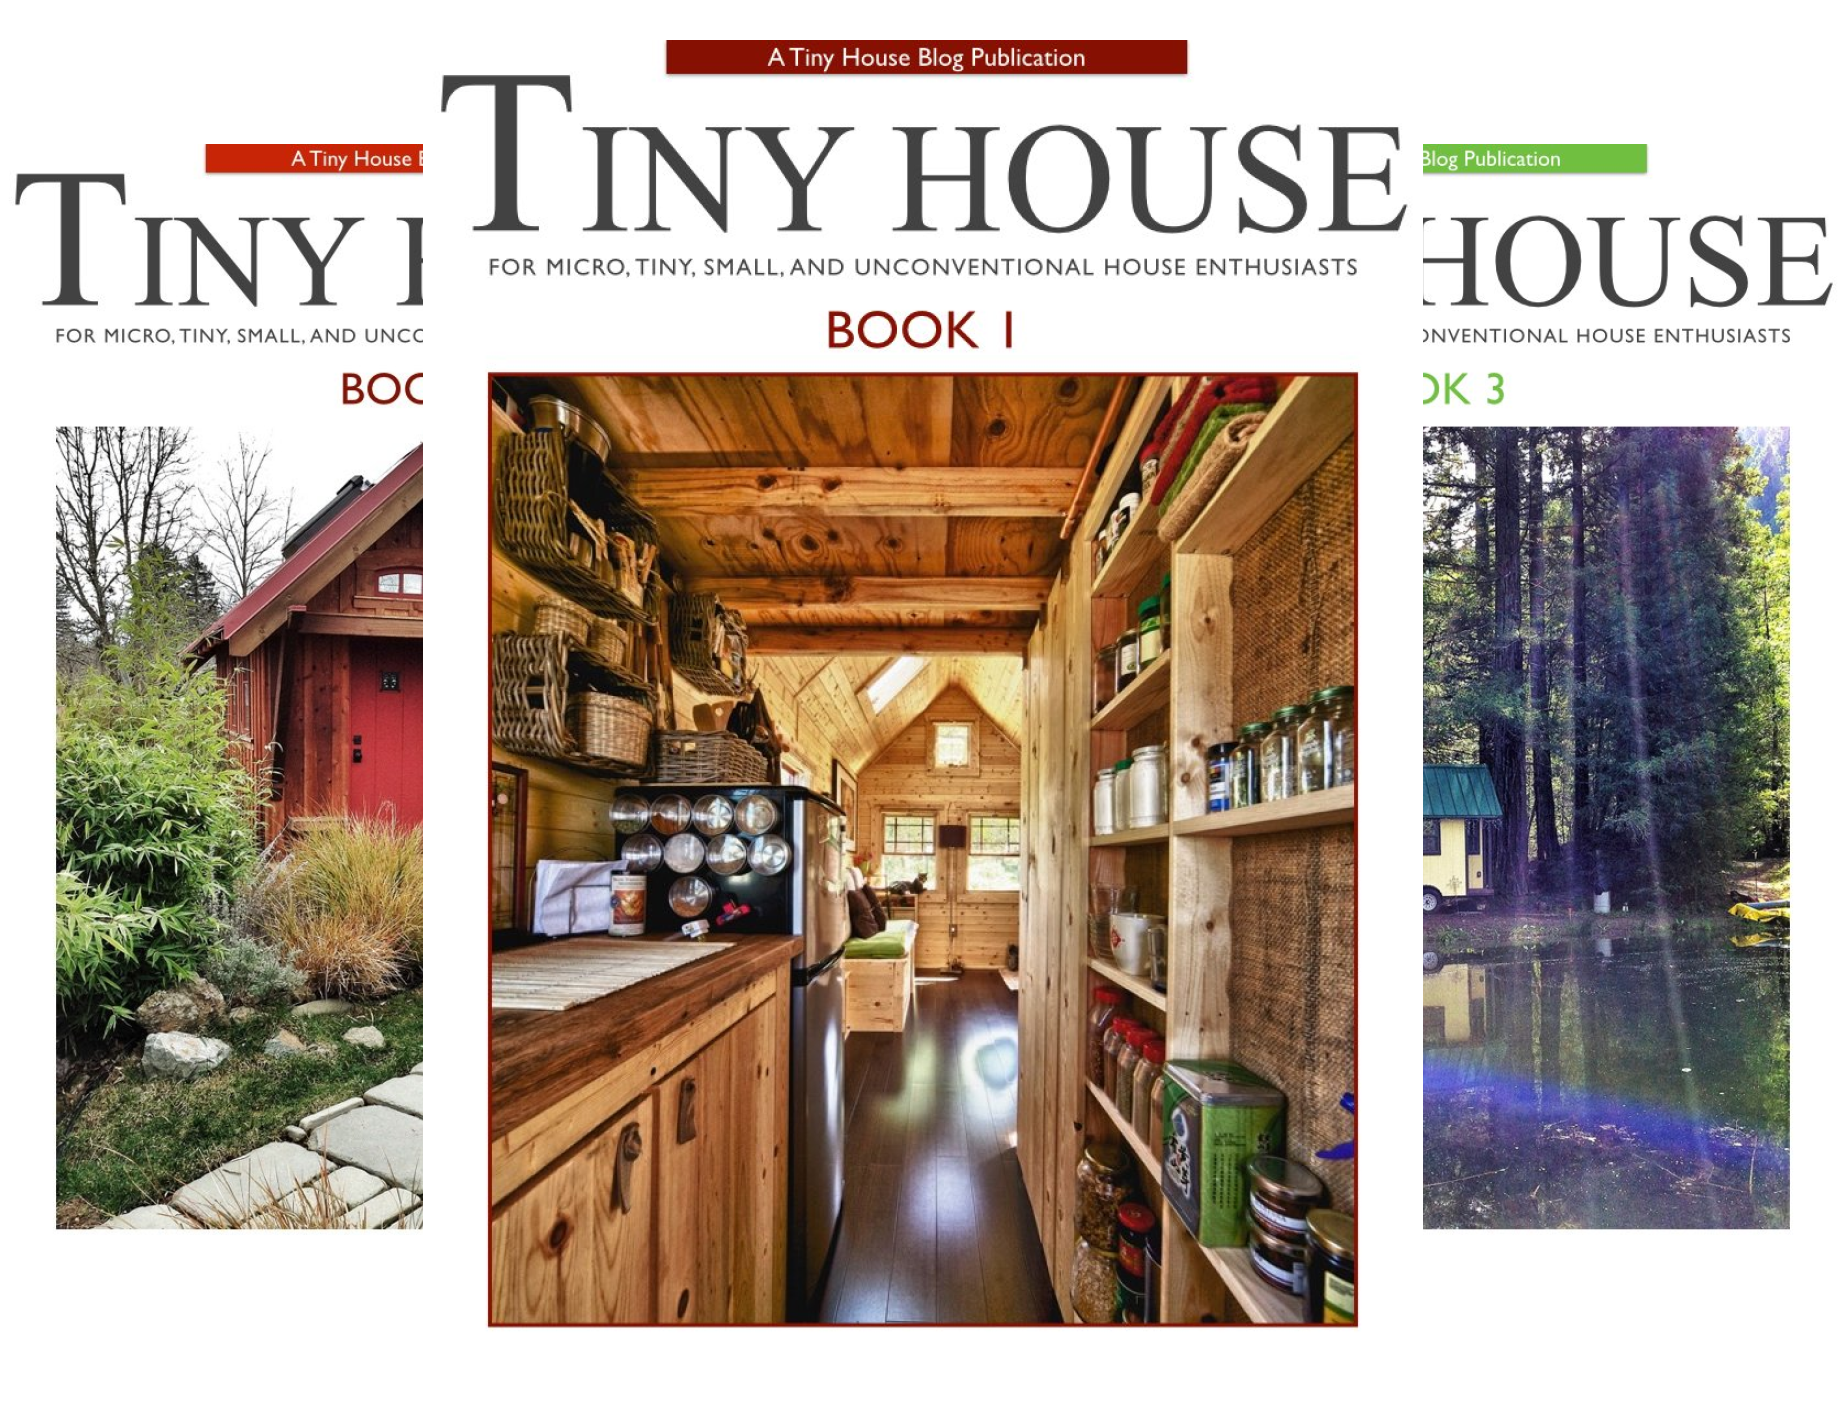 Tiny House (6 Book Series)